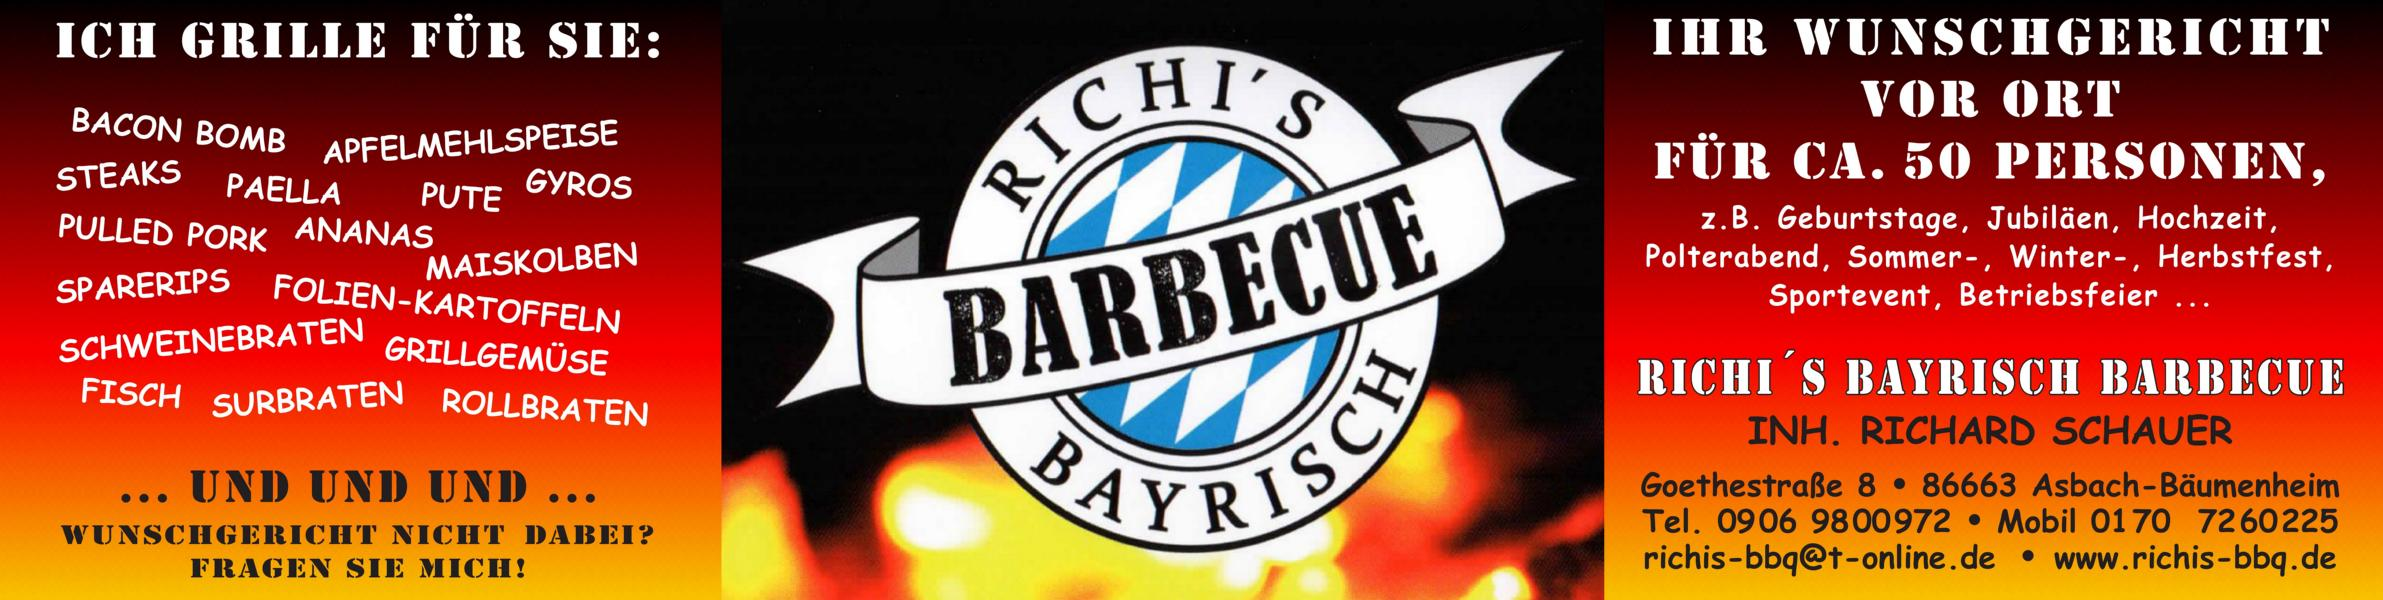 Richi's Bayrisch Barbecue